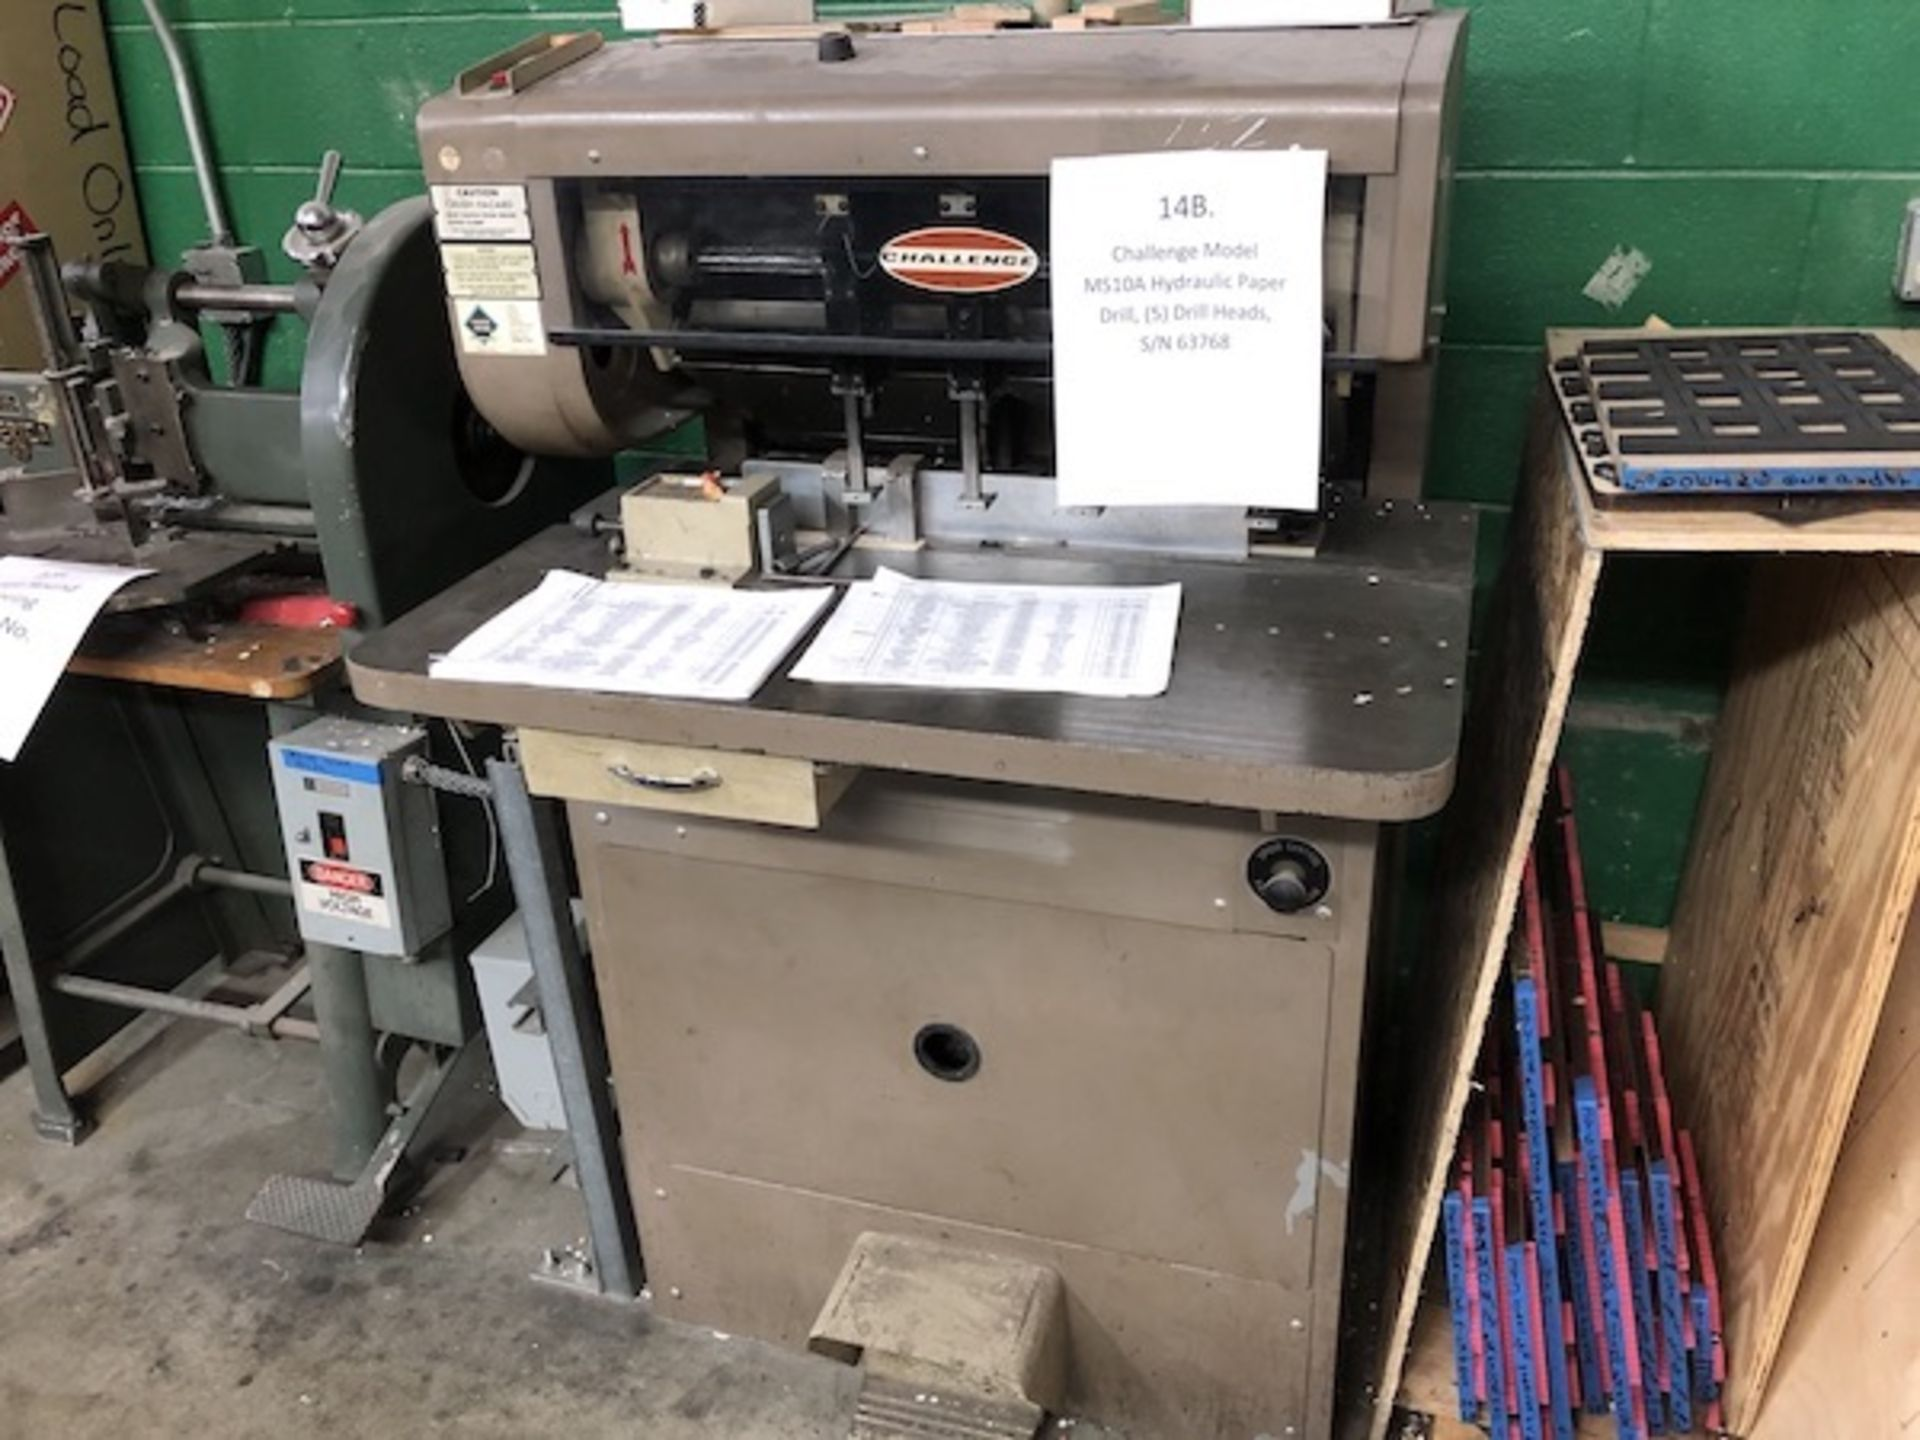 Lot 214 - Challenge Model MS10A Hydraulic Paper Drill, (5) Drill Heads, S/N 63768